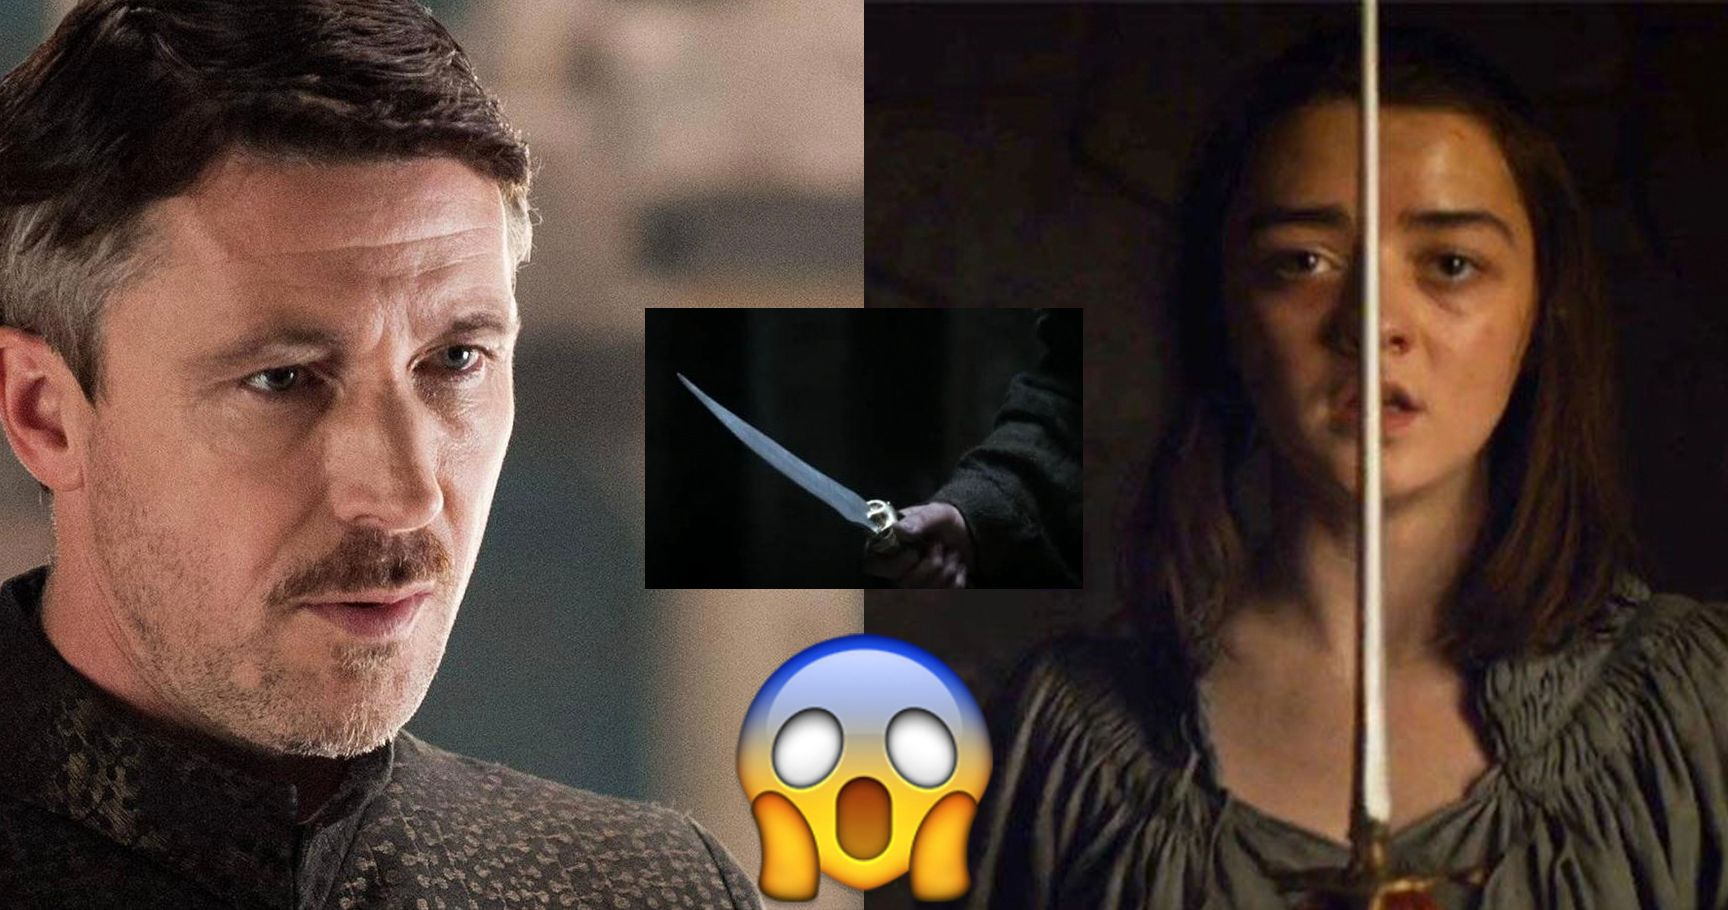 15 'Game Of Thrones' Characters Most Likely To Die This Season (According To Bookies)